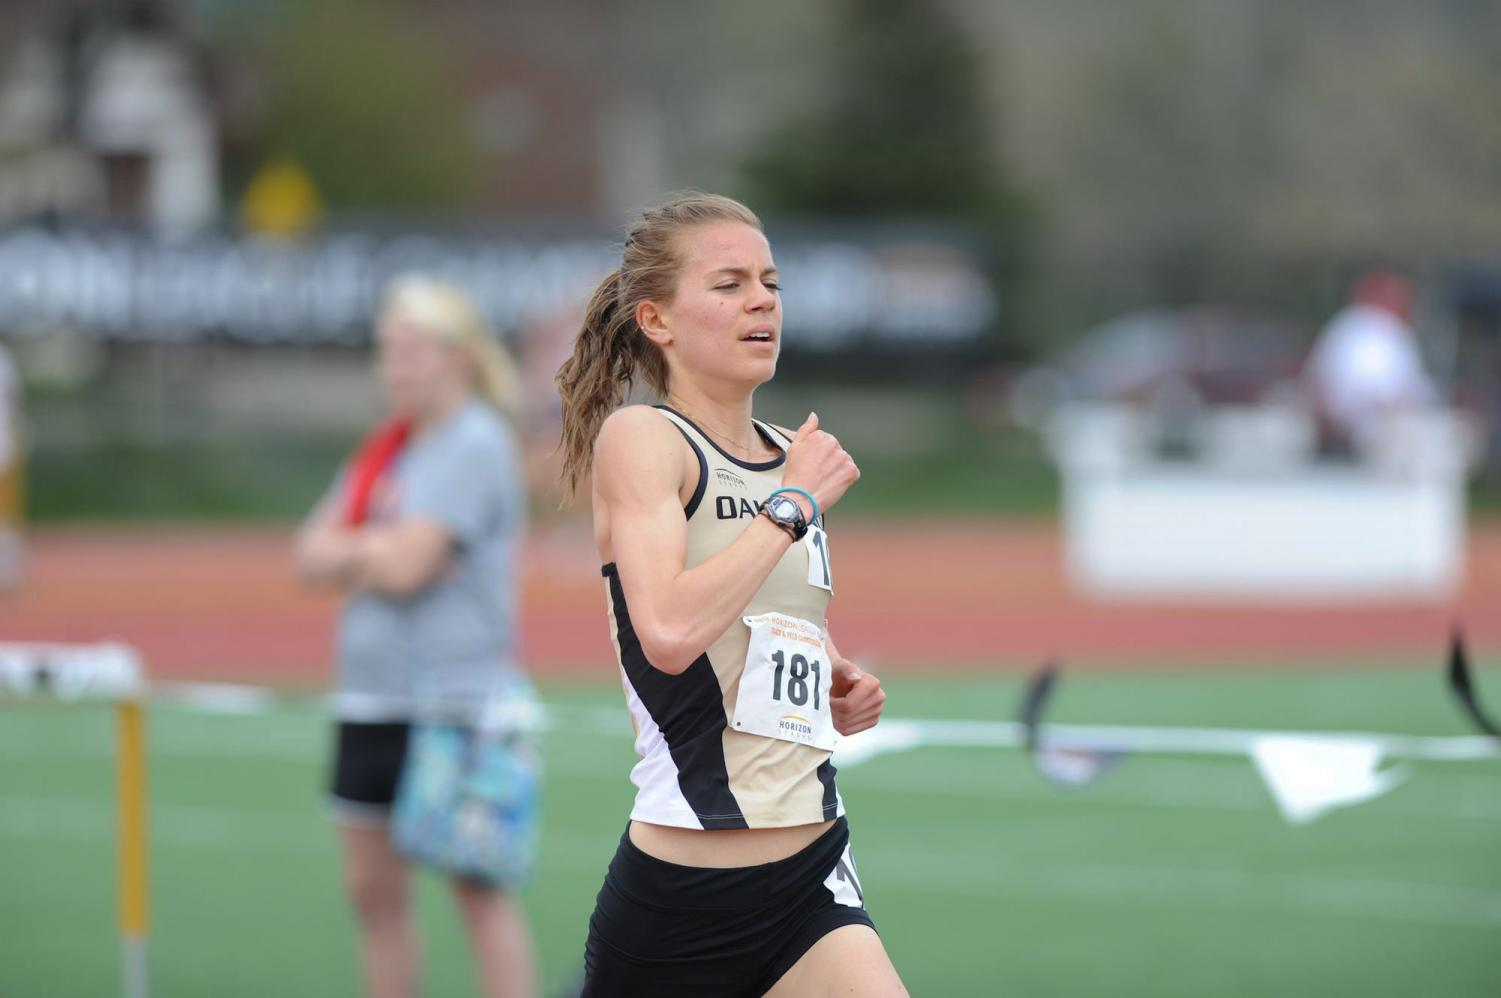 Cross country runner Maggie Schneider represented Oakland University at the NCAA National Championships in Terre Haute, Indiana.